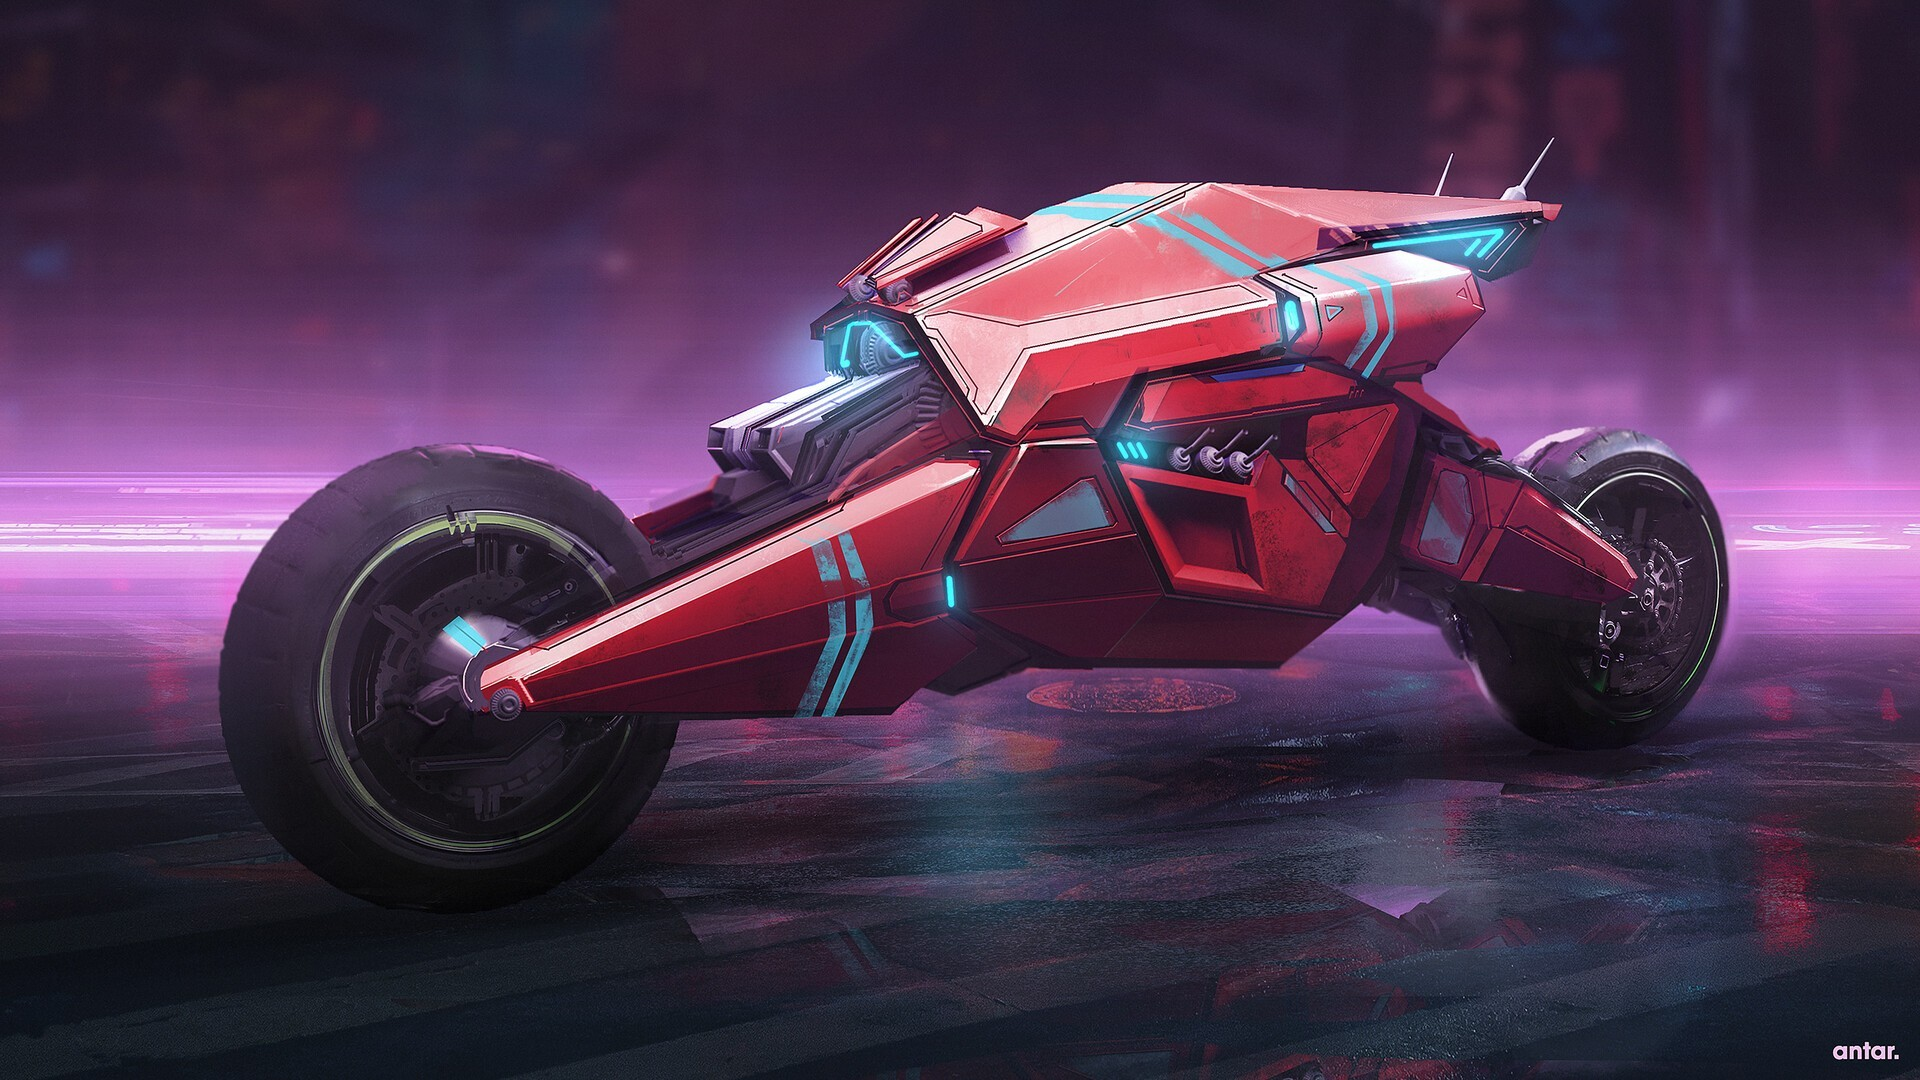 Motorcycle Cyberpunk by Antar